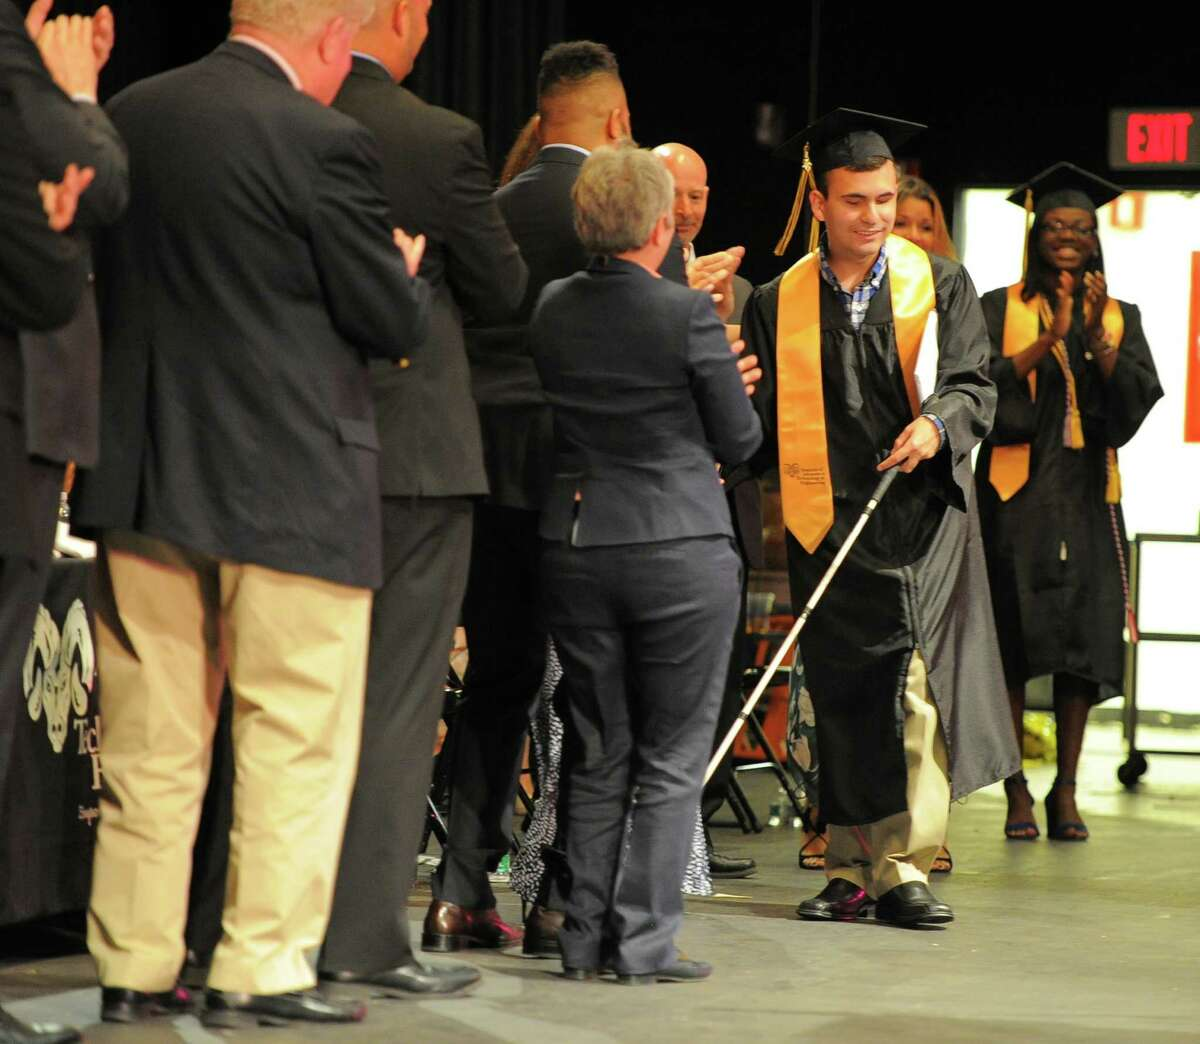 Brian Martin makes his way across stage as he is recognized with a standing ovation by his peers and audience during the Academy of Information Technology and Engineering Class of 2016 commencement at the school in Stamford, Conn., on Tuesday, June 14, 2016. Martin express it was his goal to navigate the stage unassisted when it came time to receiving his diploma.